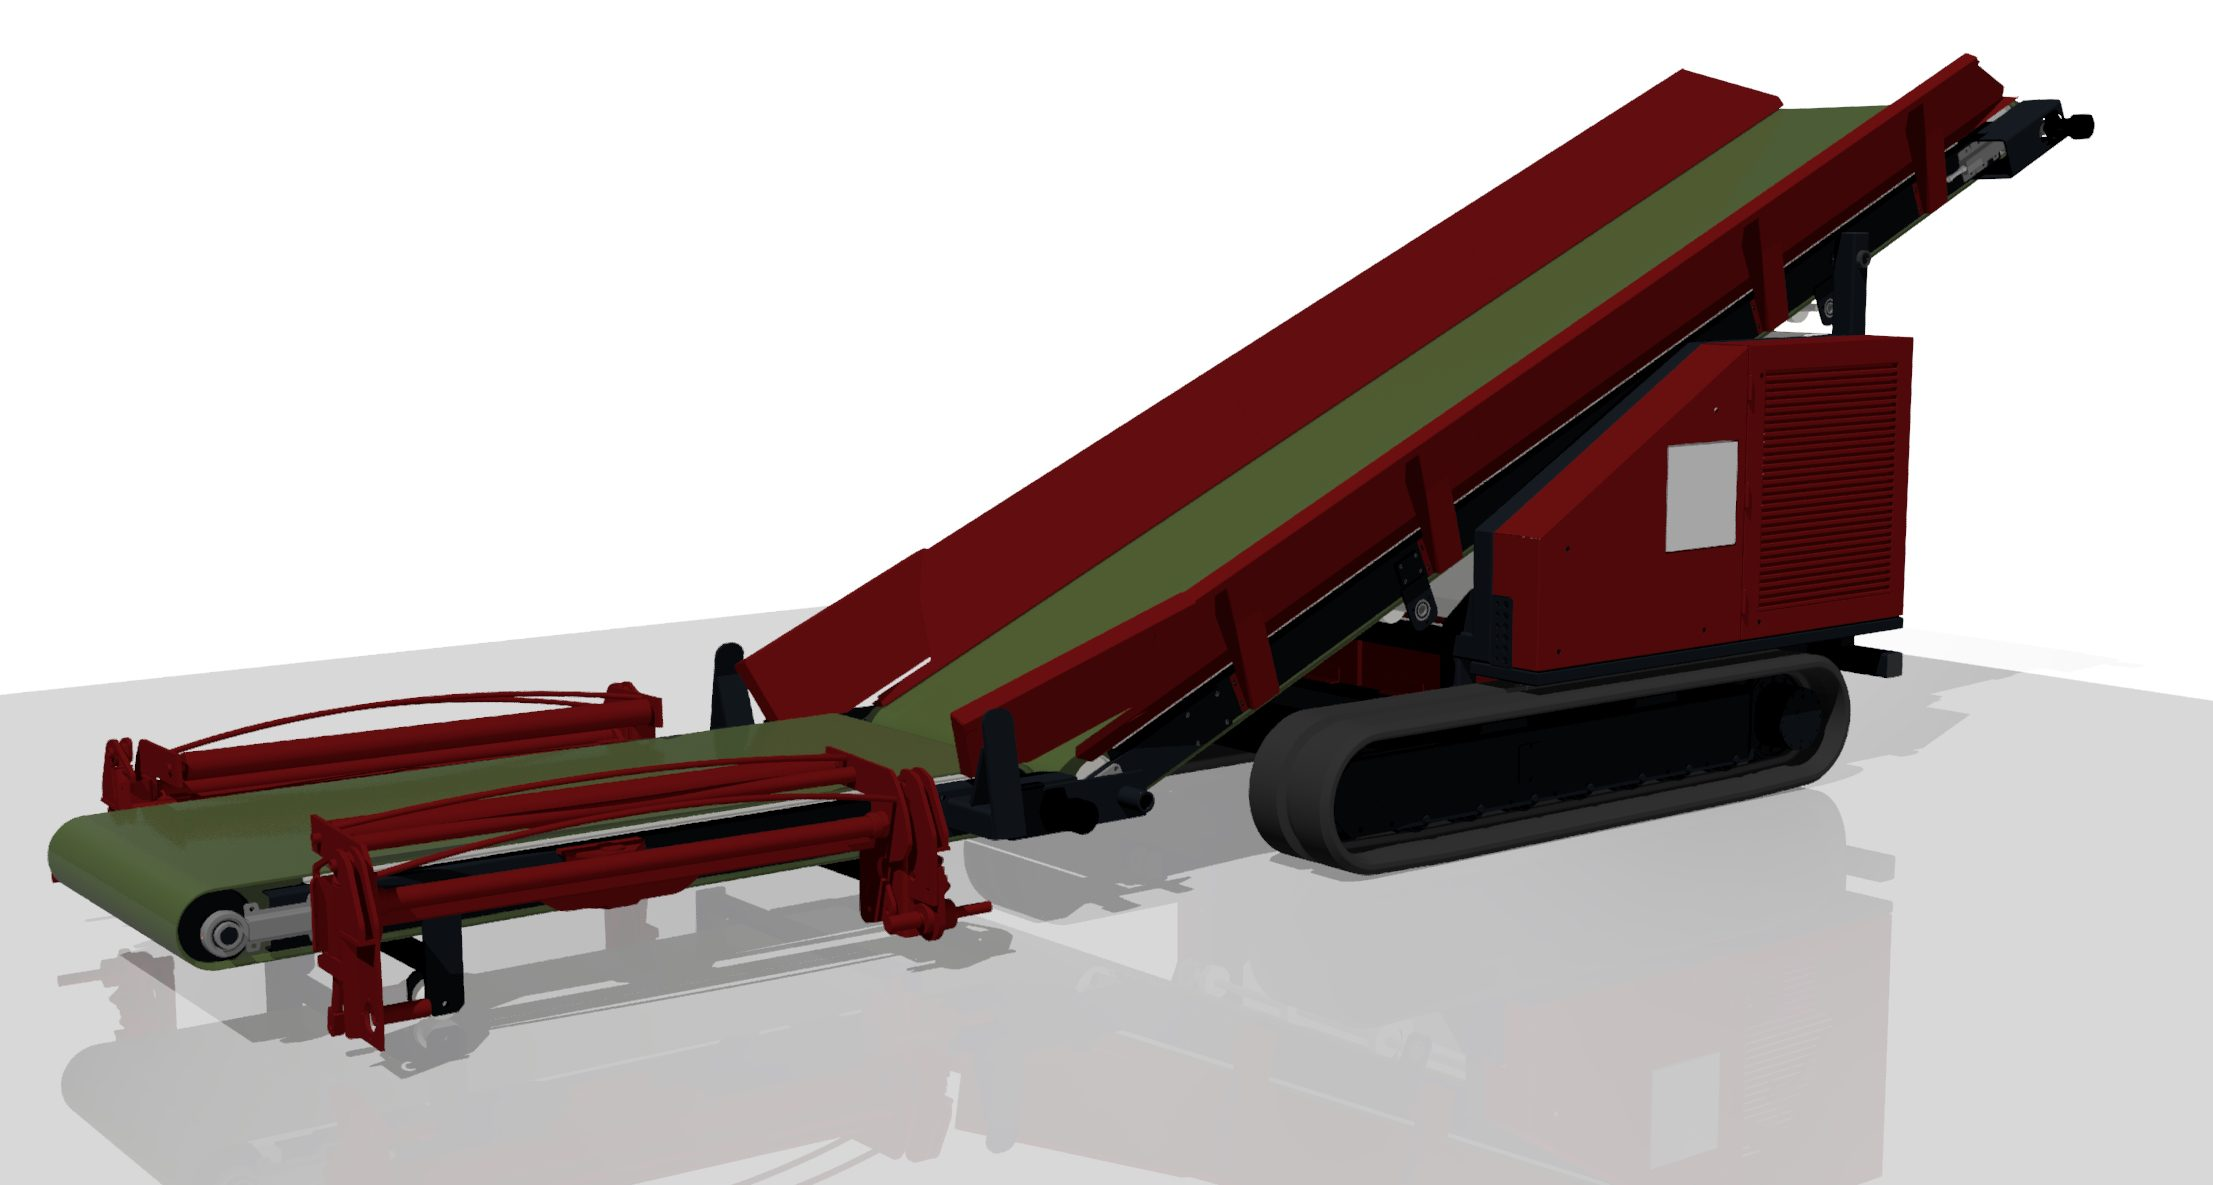 Engineering - 3D Model